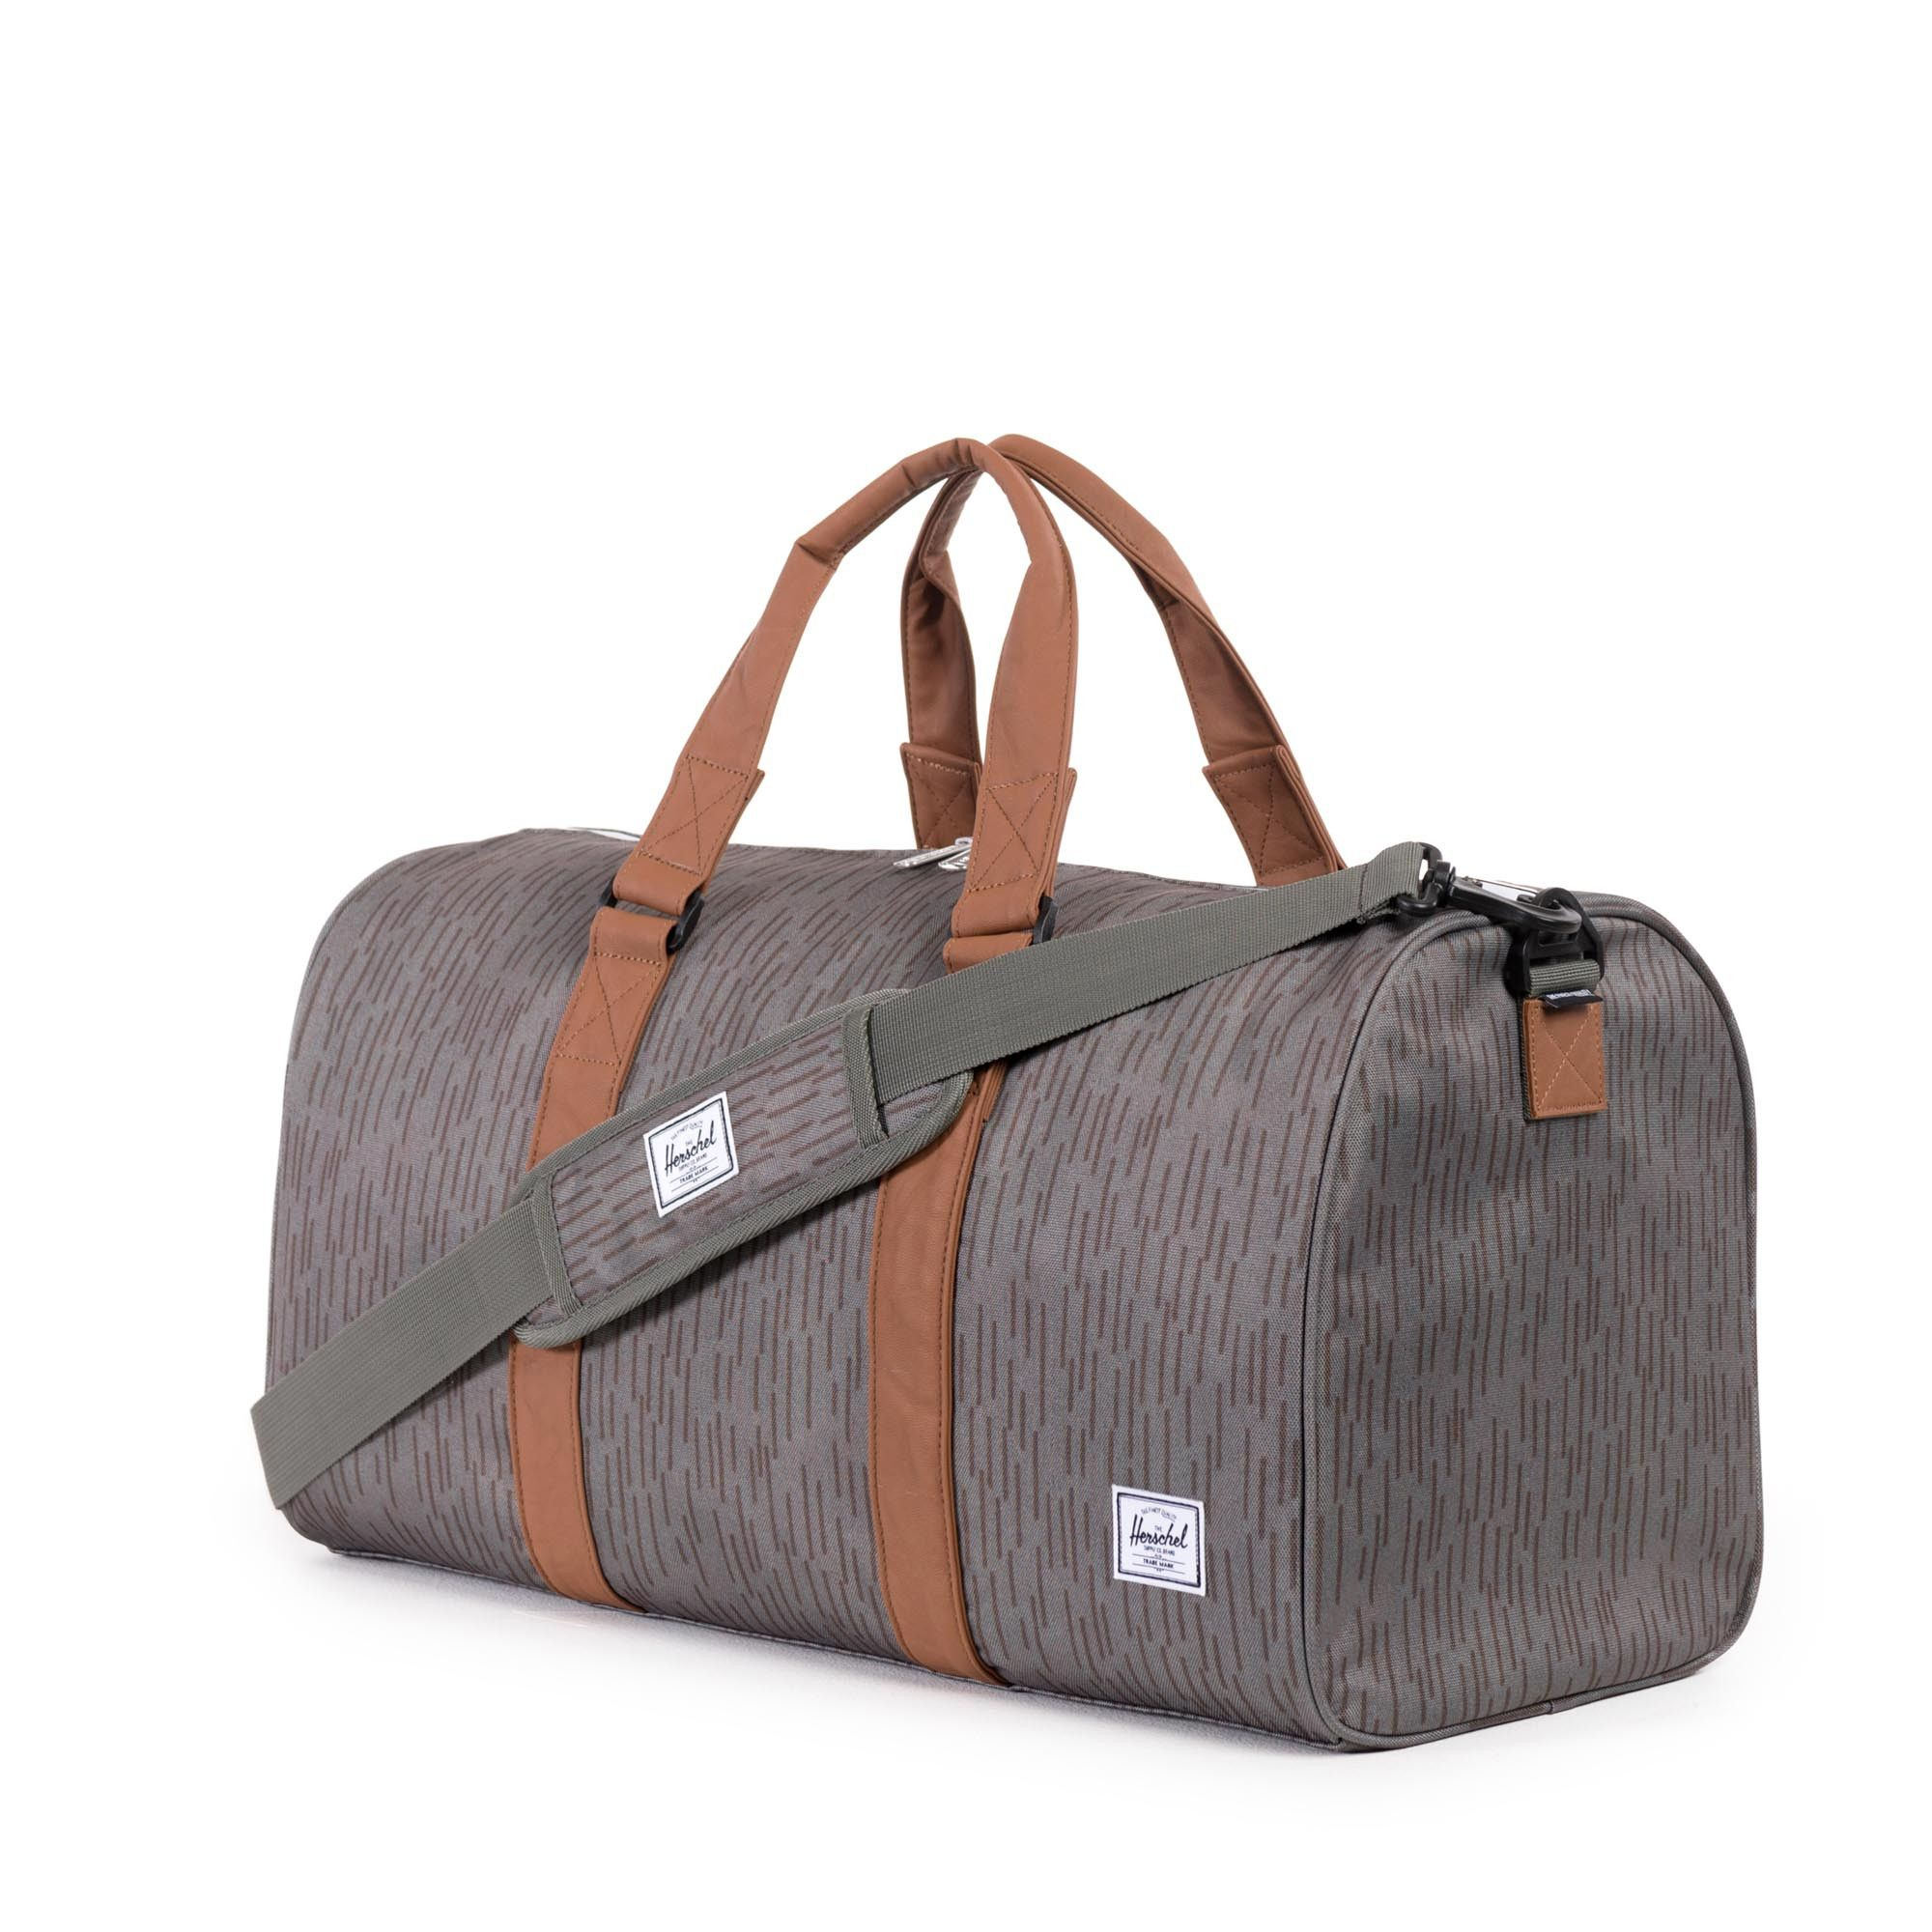 Gym Bag Herschel: Backpacks, Herschel